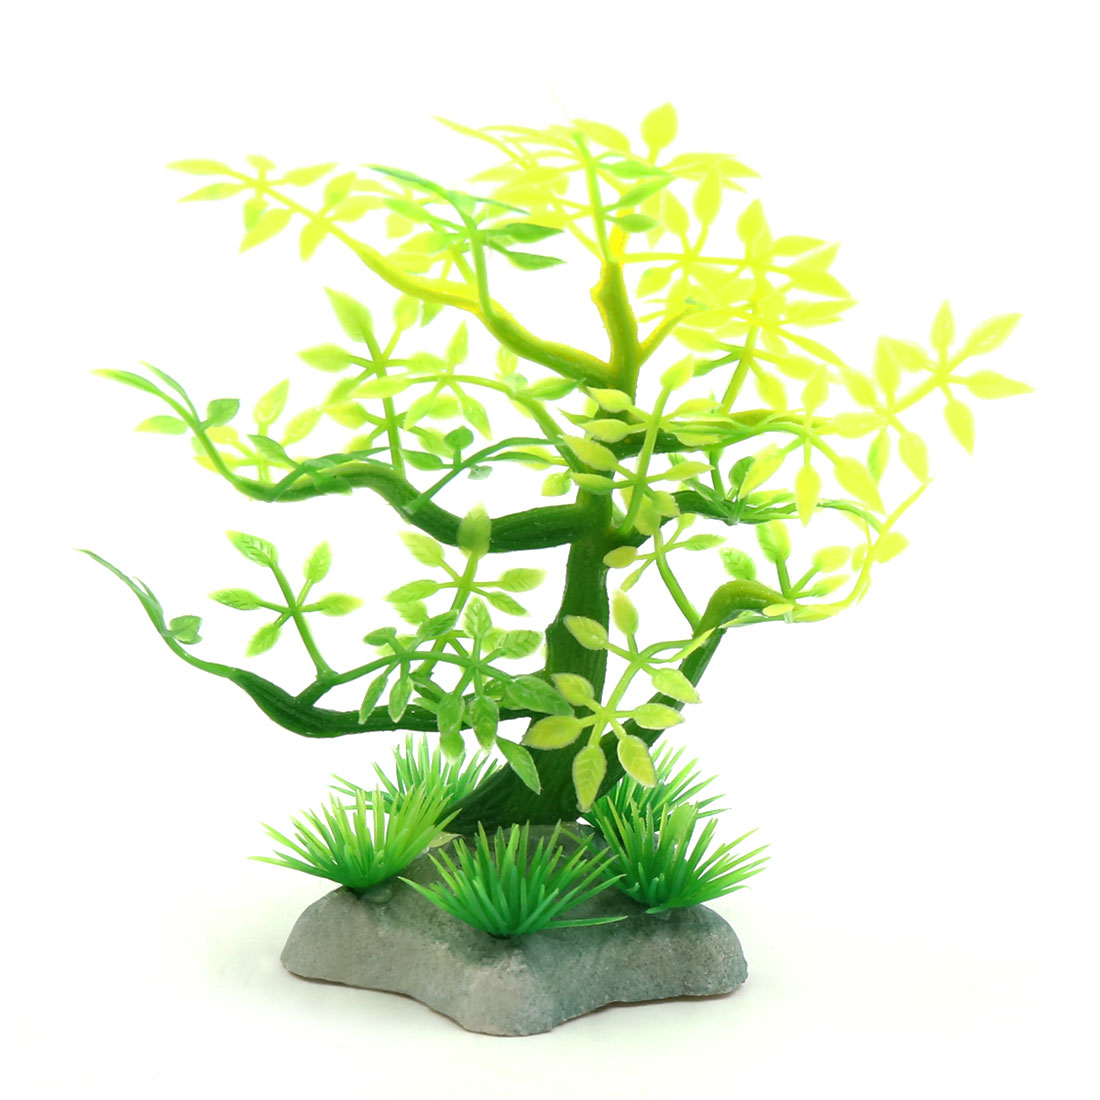 Plastic Mini Lifelike Tree Aquarium Betta Tank Fishbowl Landscape Decor Yellow